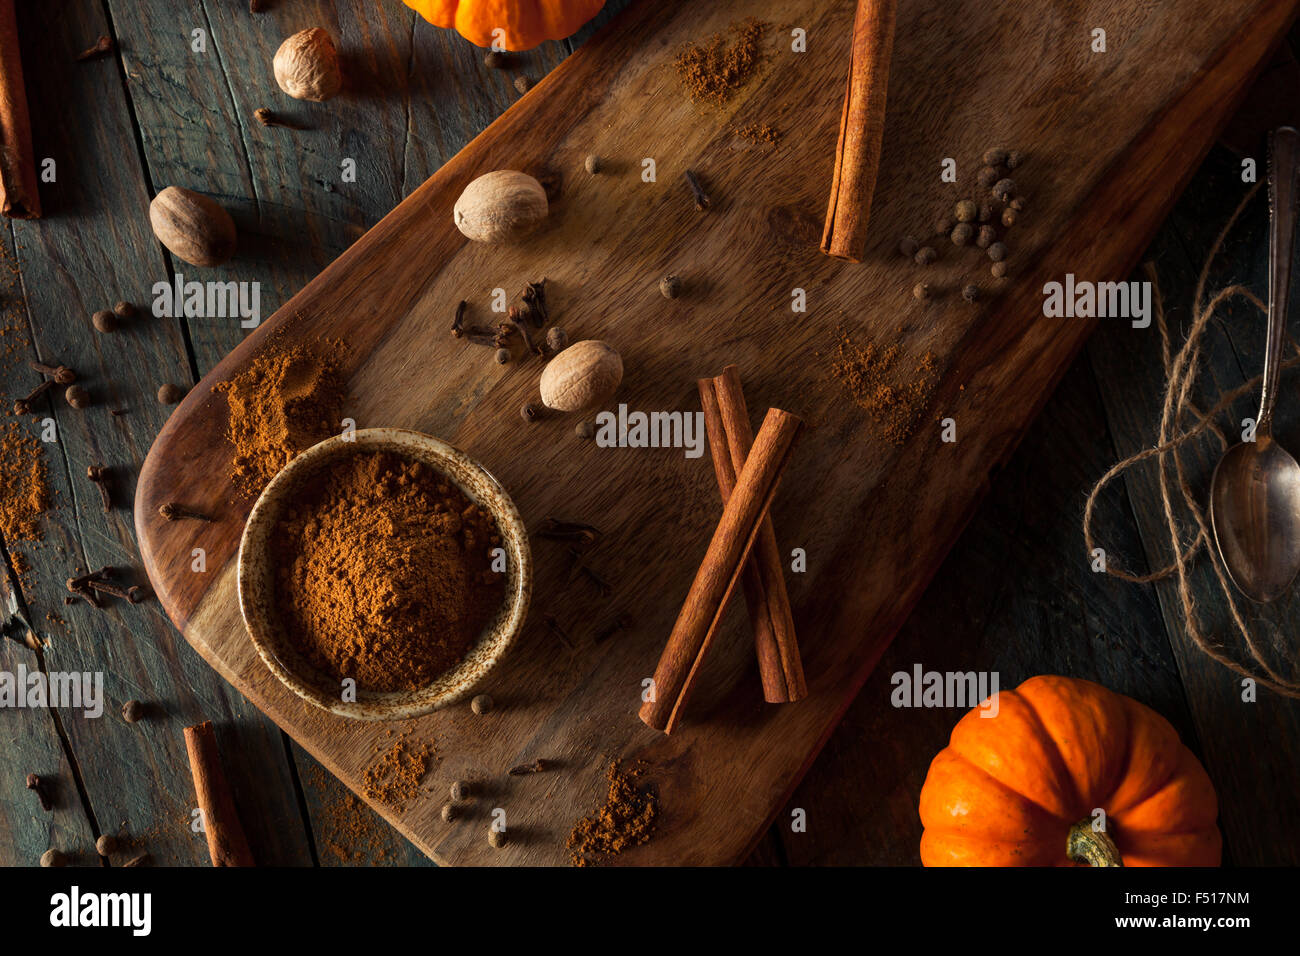 Organic Raw Pumpkin Spice with Cinnamon Allspice Nutmeg and Ginger - Stock Image